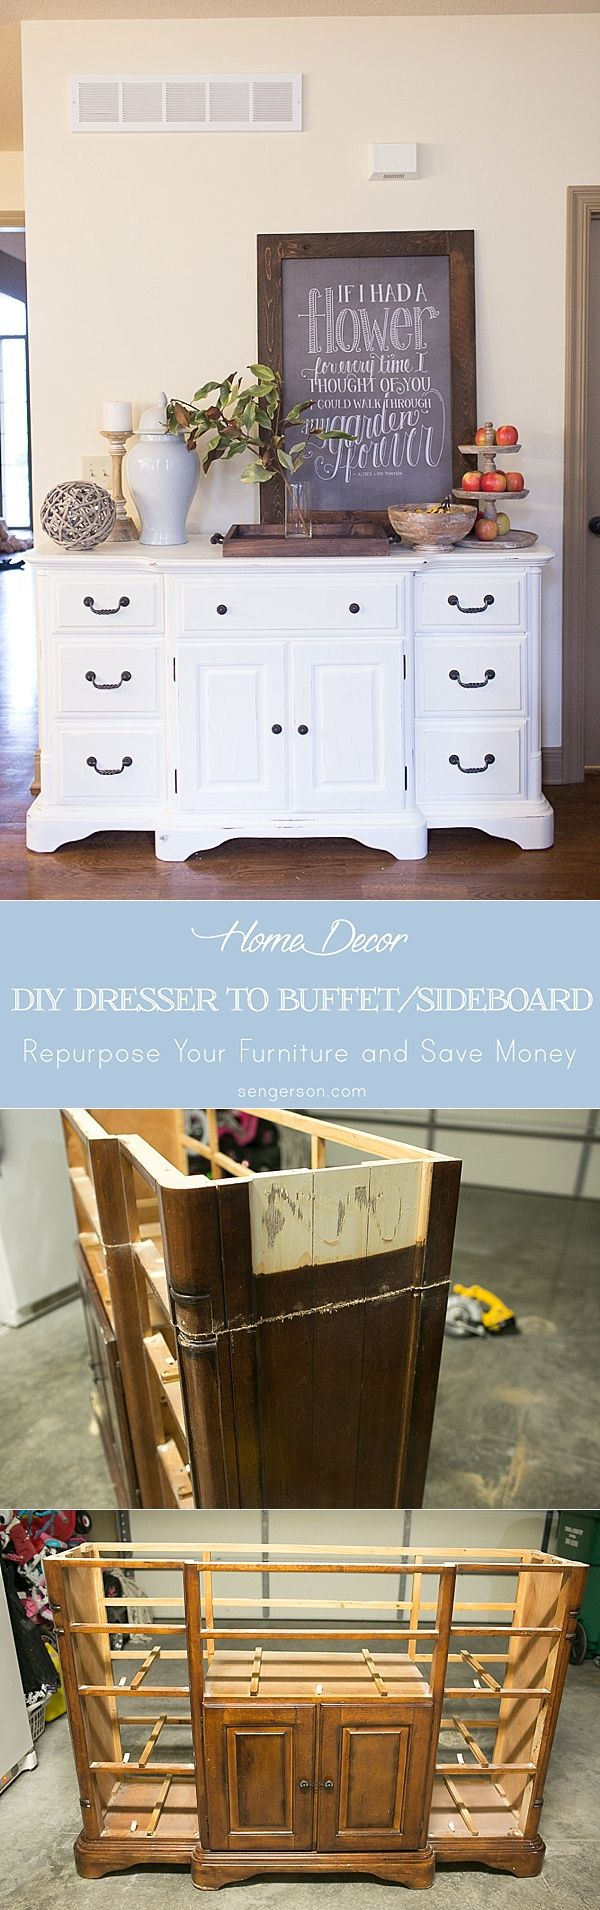 Transformation Of A Dresser To Buffet Sideboard Using Jigsaw And Chalk